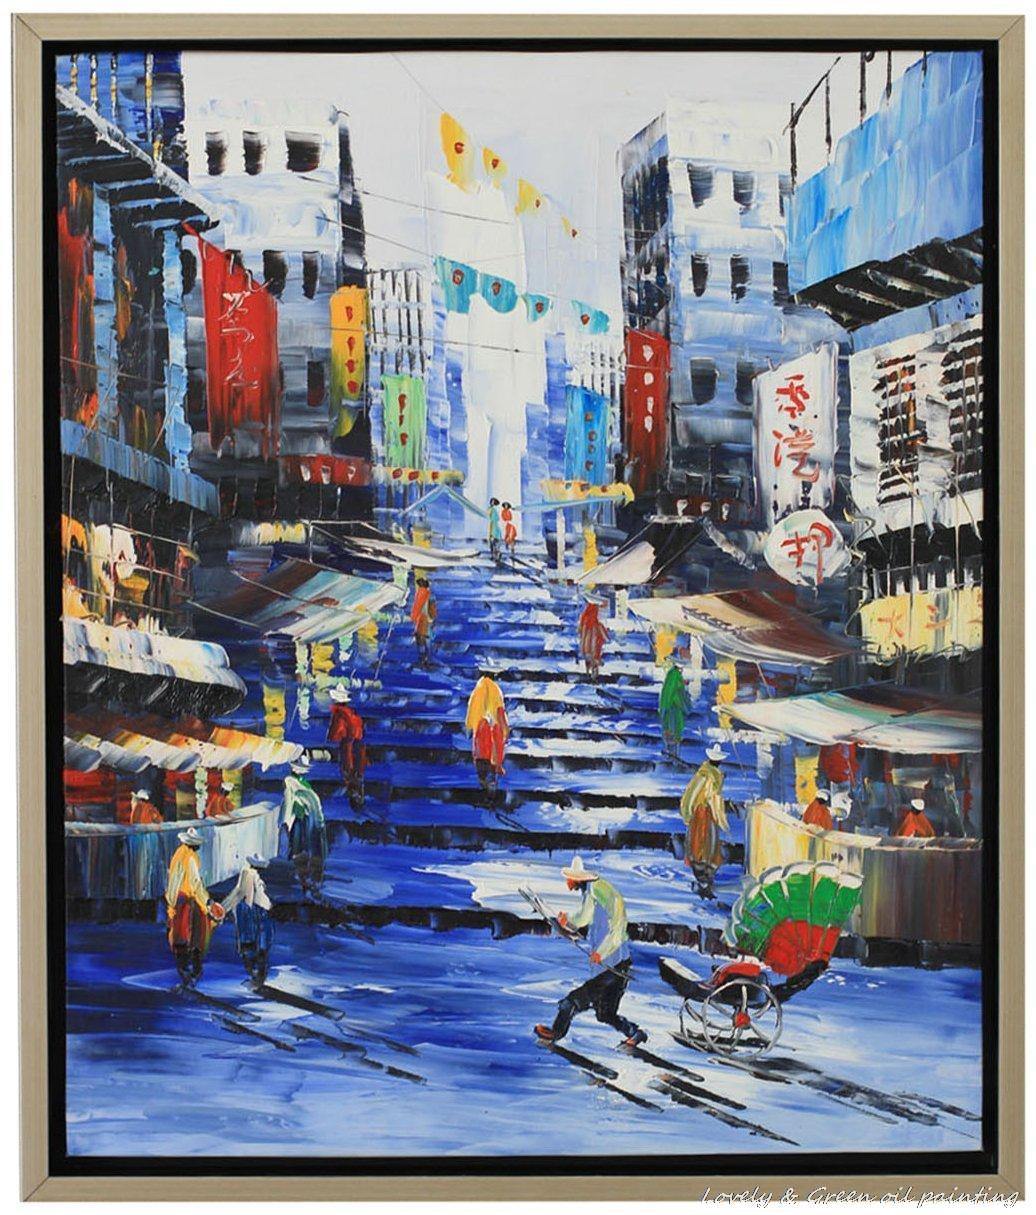 Decorative Art Handmade Oil Painting On Canvas Living Room Home Decor Wall Paintings Impression Hong Kong Landscape Pictures(China (Mainland))